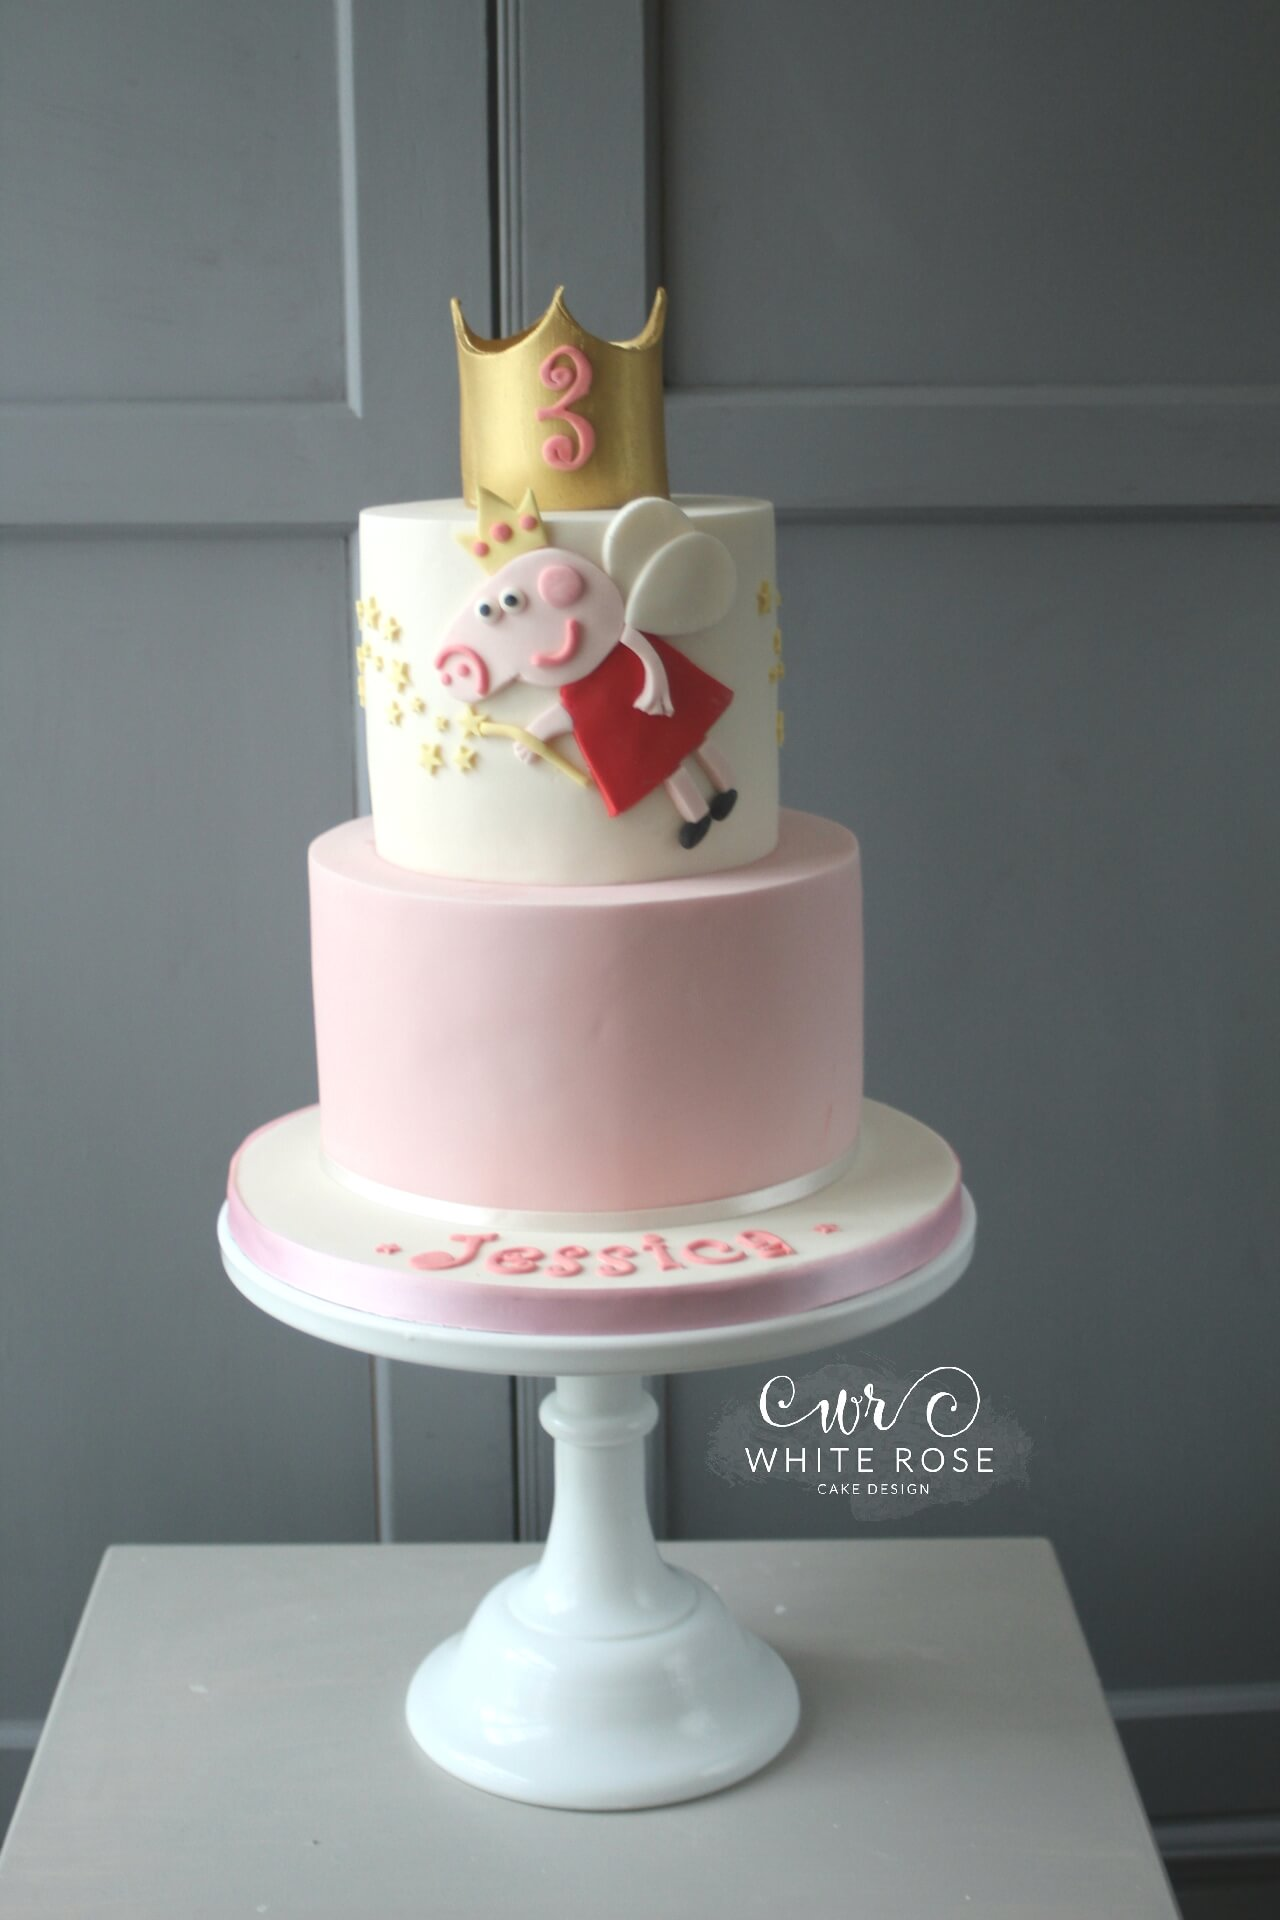 Peppa Pig 3rd Birthday Cake by White Rose Cake Design West Yorkshire Cake Maker